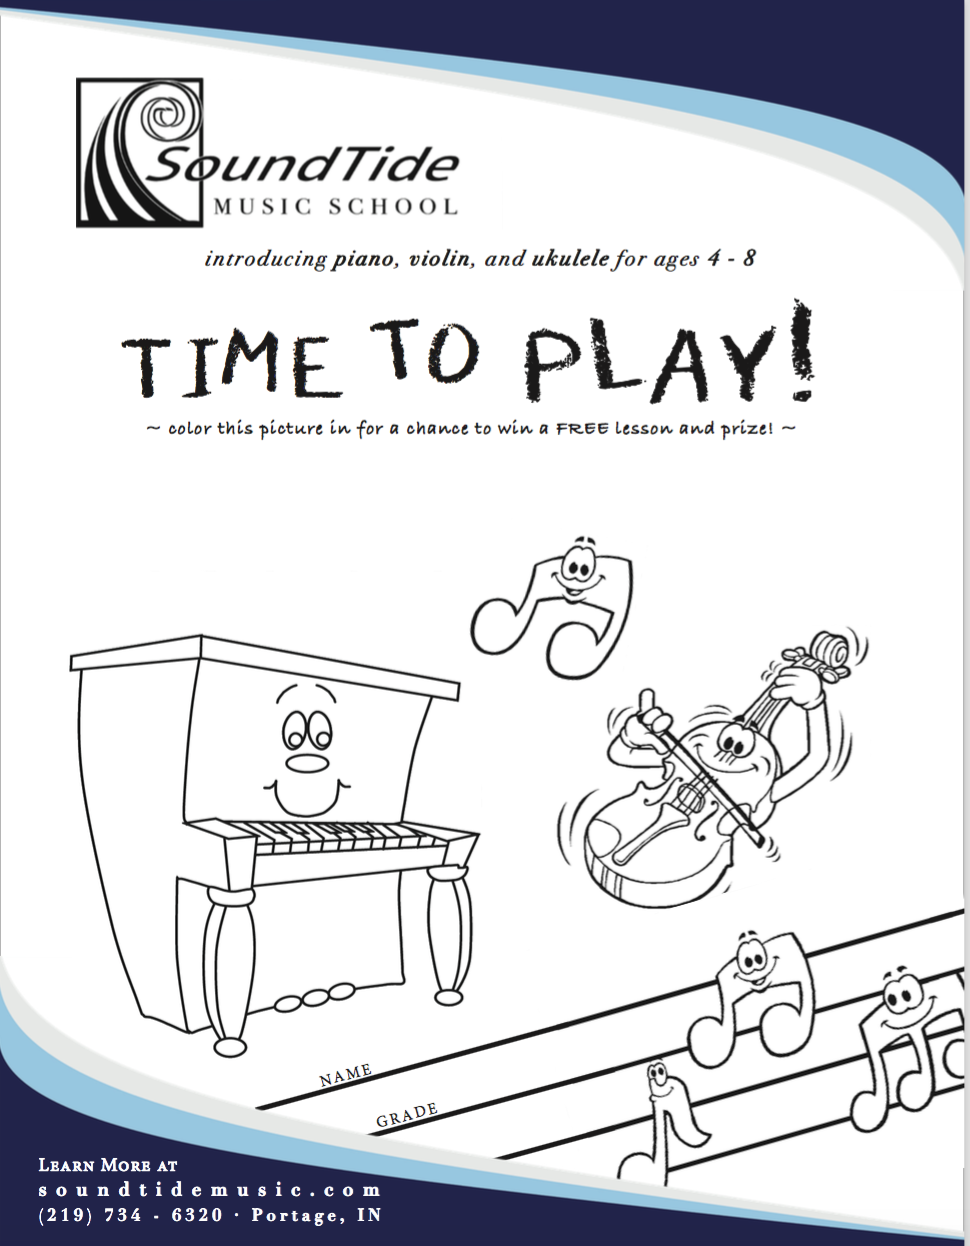 SoundTide Coloring Competition.png